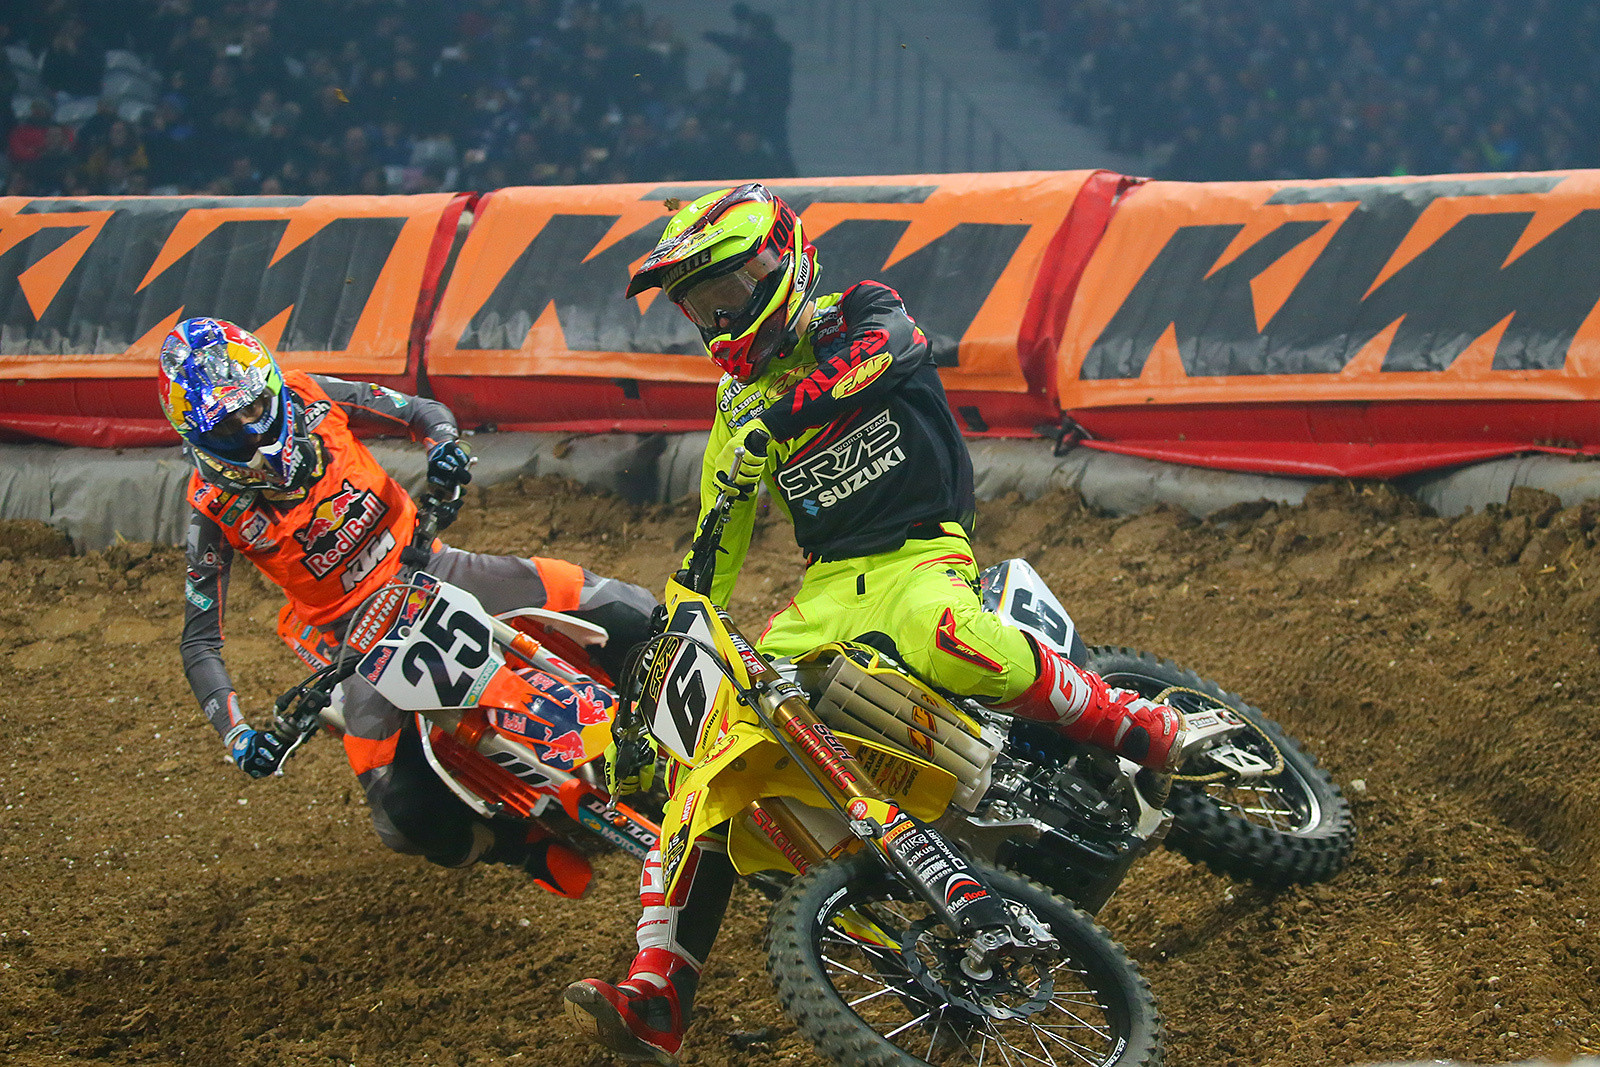 Thomas Ramette and Marvin Musquin - Photo Gallery: Saturday at the Paris-Lille Supercross - Motocross Pictures - Vital MX